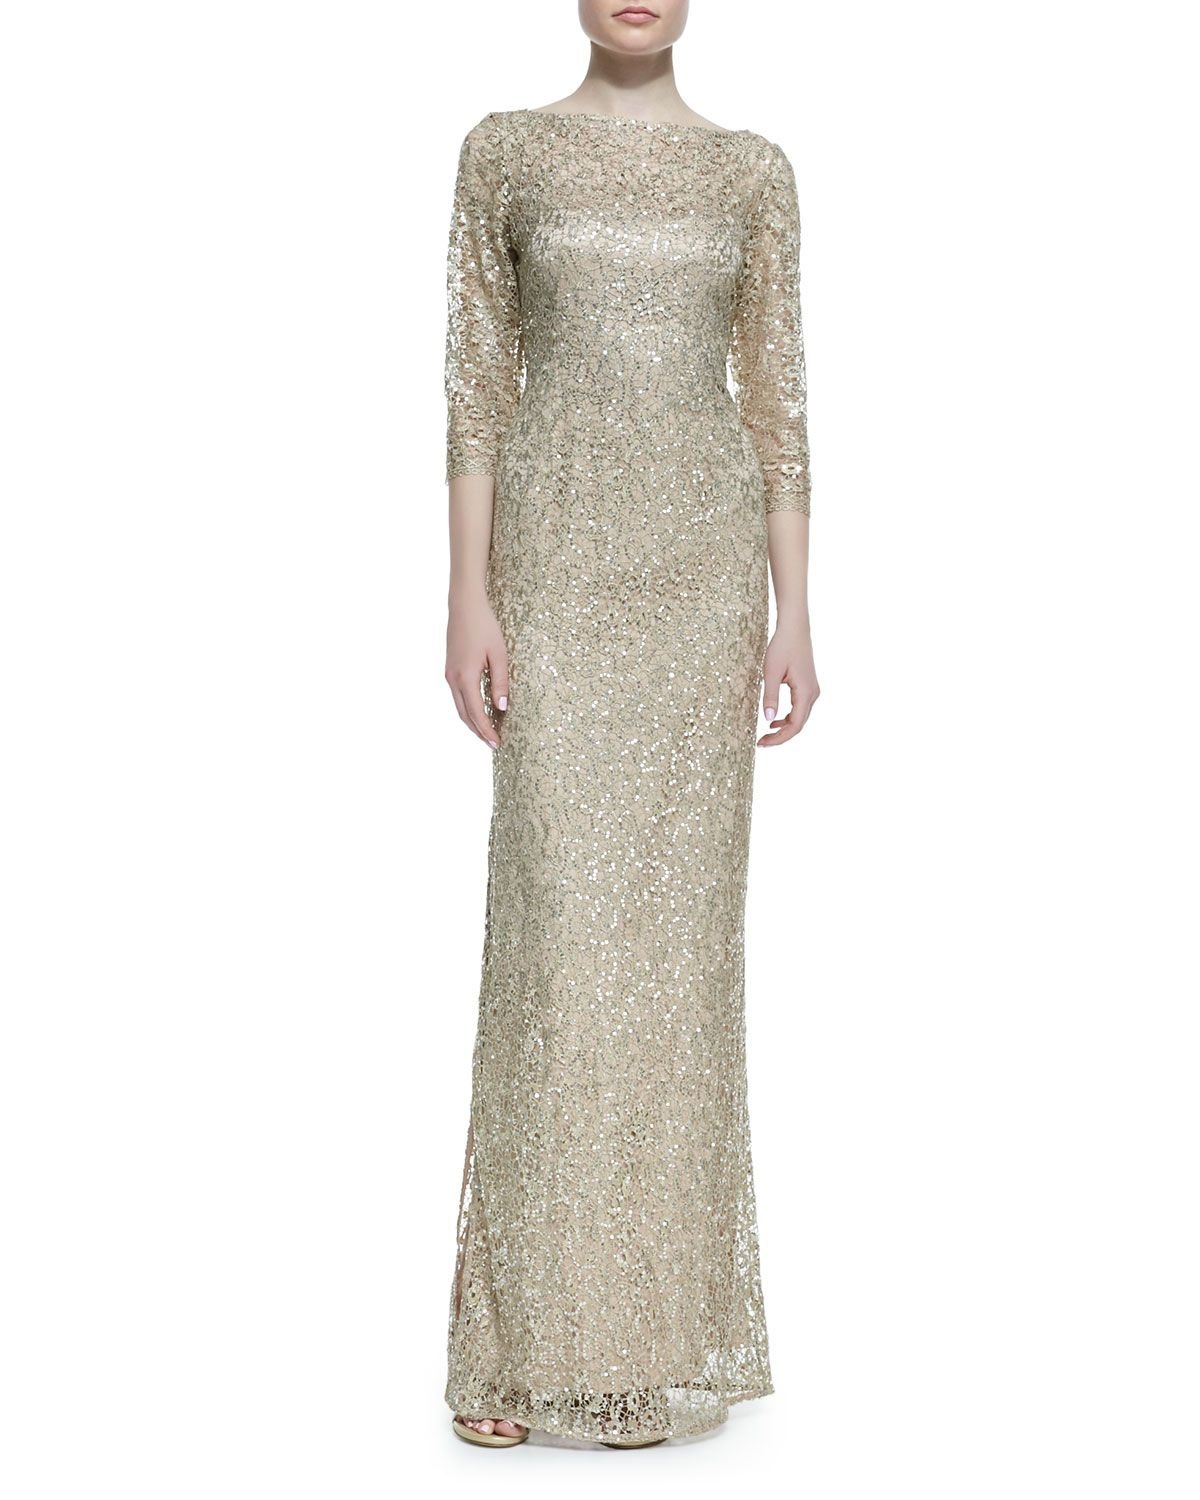 Neiman marcus dresses for weddings   Incredible Wedding Dresses for under   Gatsby  Pinterest